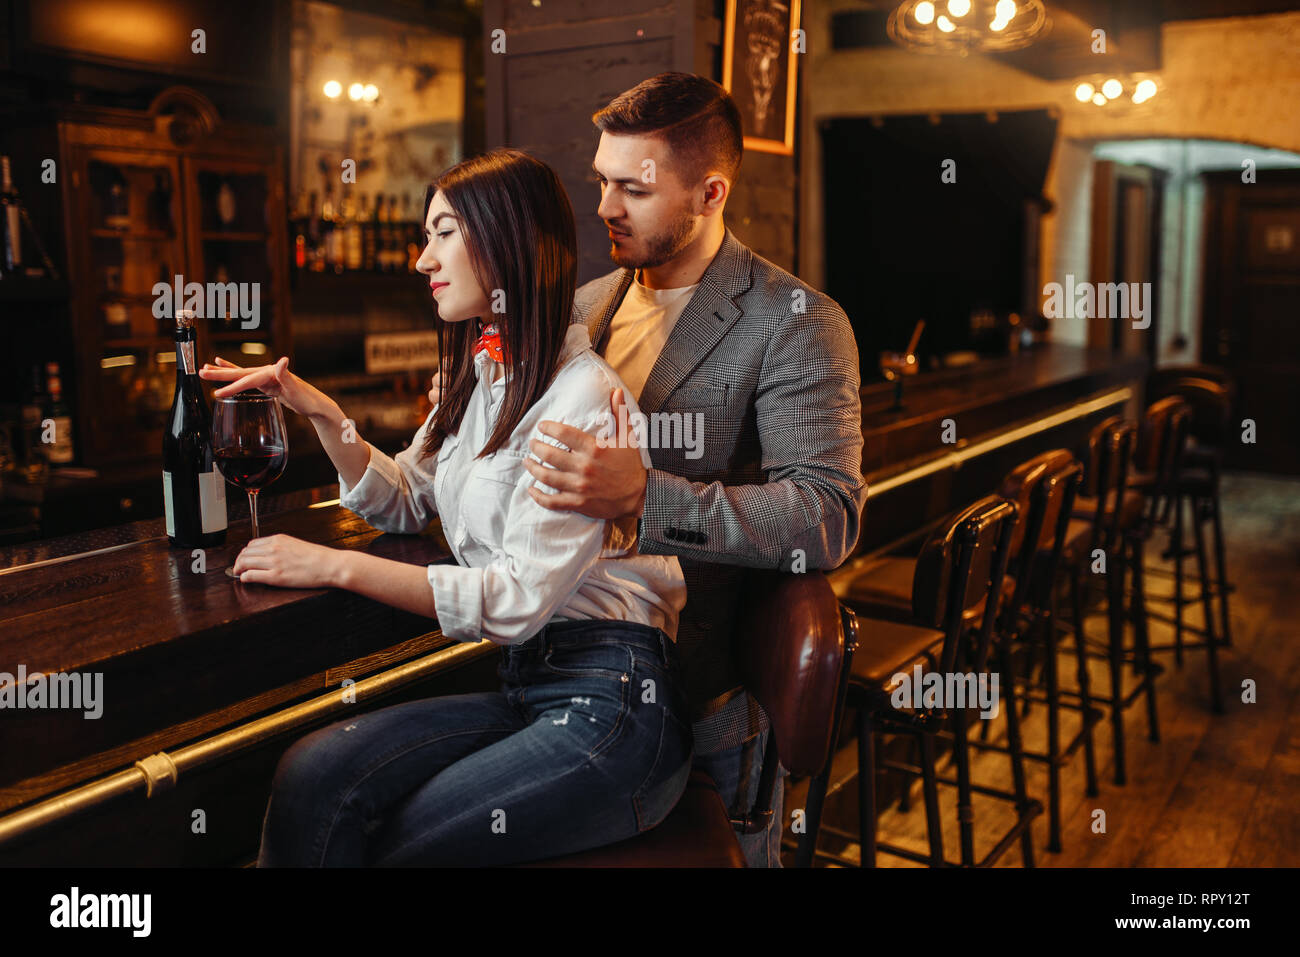 Man and woman relax, couple at wooden bar counter. Lovers leisures in pub, husband and wife relaxing together in nightclub - Stock Image